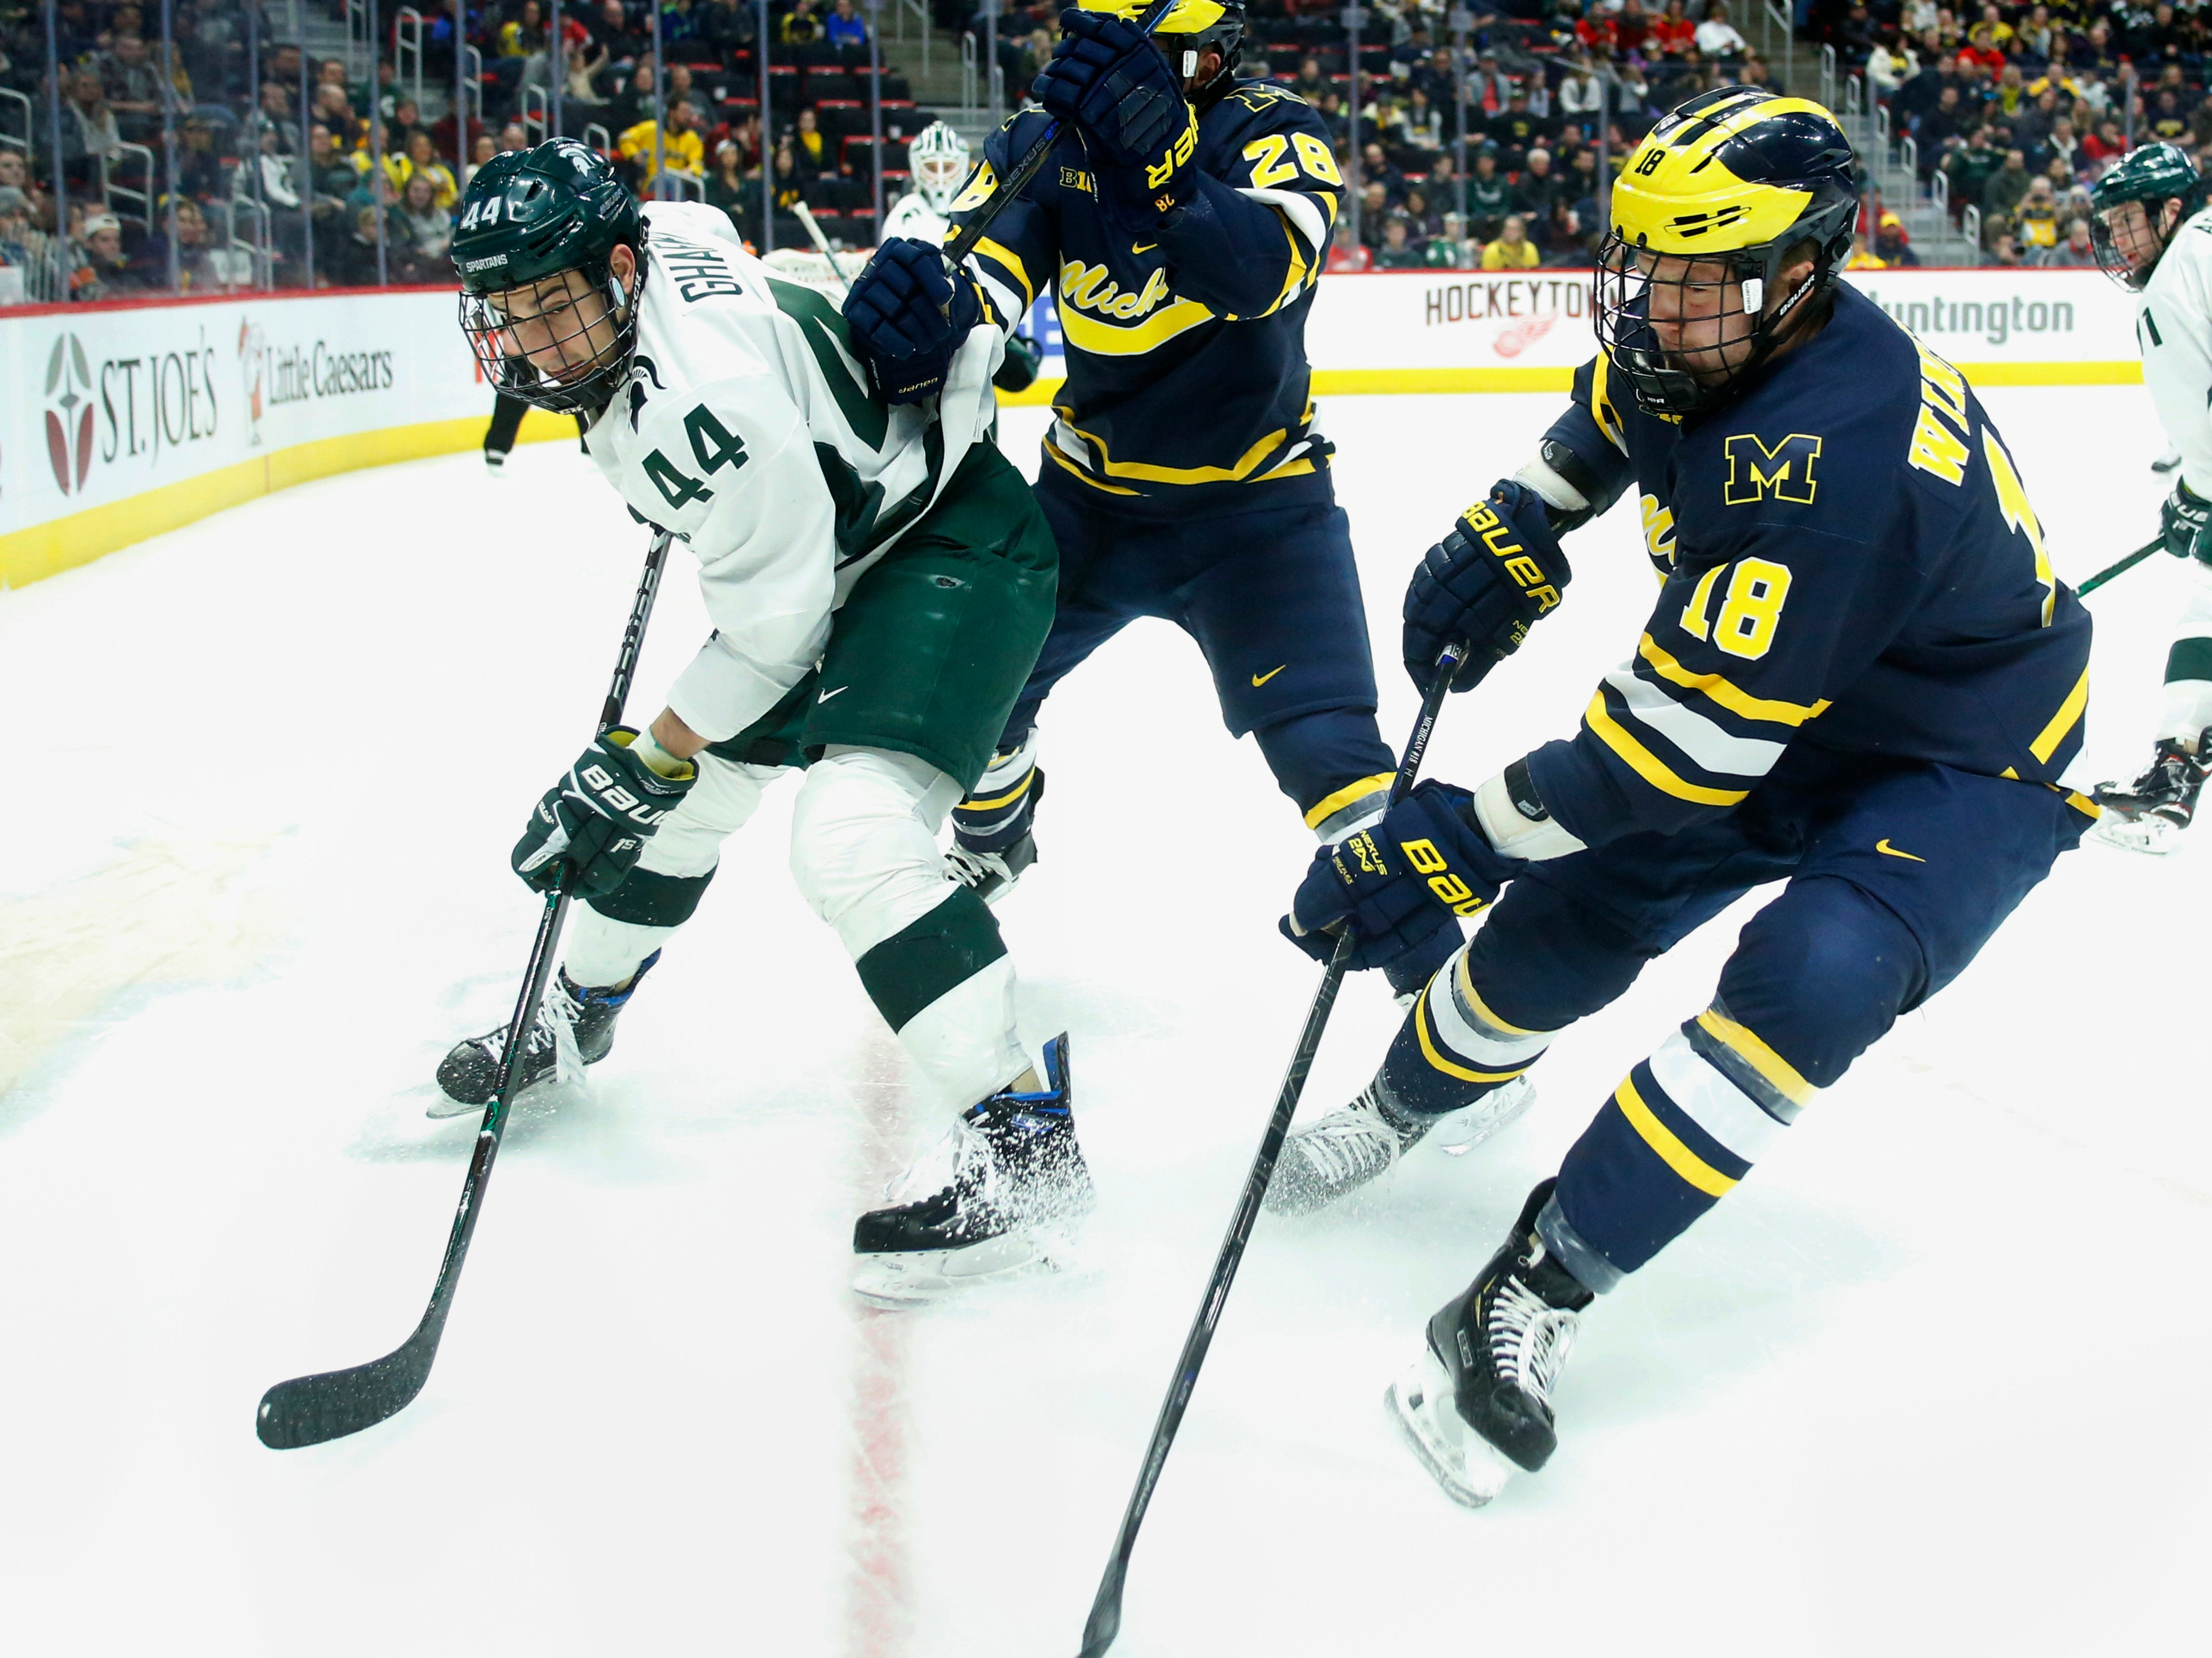 Michigan State defenseman Butrus Ghafari loses the puck to Michigan forward Adam Winborg, right, while being defended by Michigan forward Jack Randl during the first period on Saturday, Feb. 9, 2019, at Little Caesars Arena.